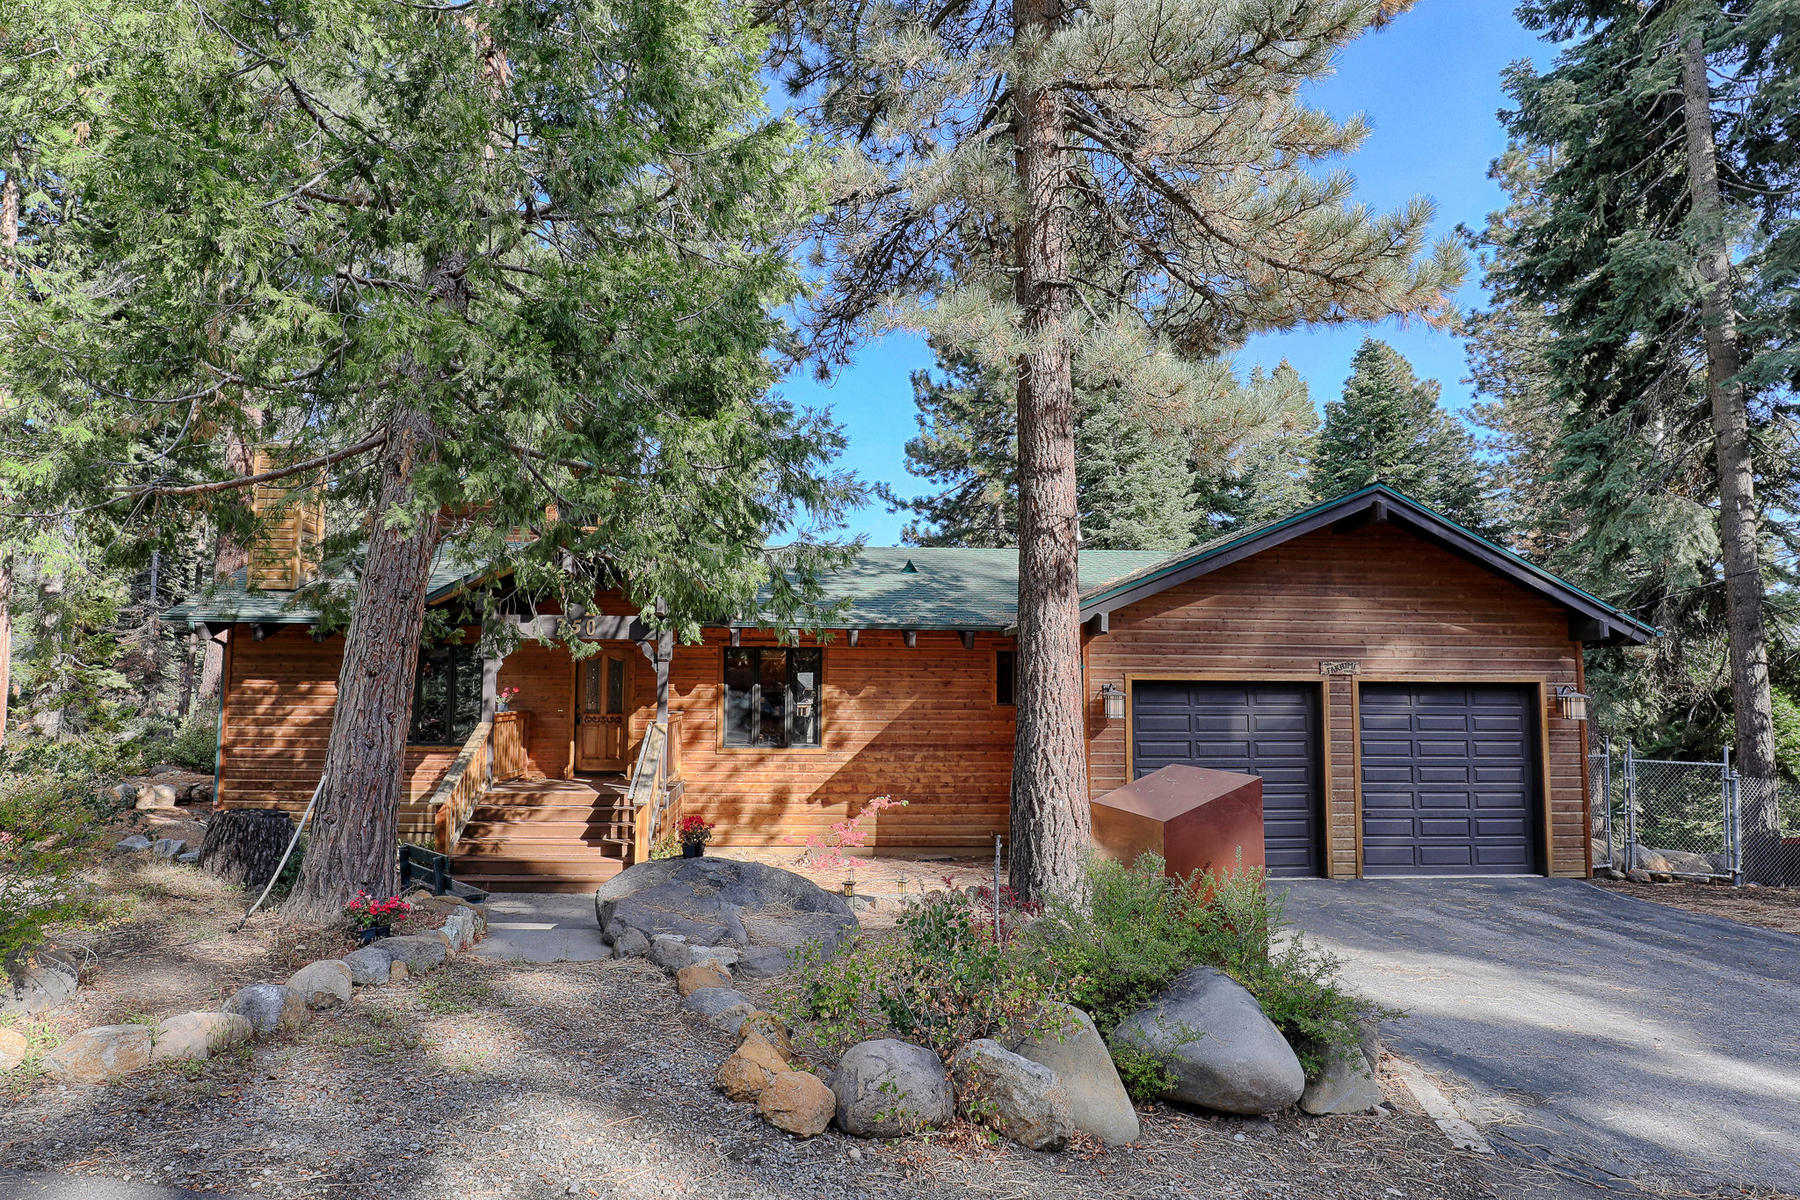 Single Family Home for Active at 350 Rim Drive, Tahoe Vista, Ca 96148 350 Rim Drive Tahoe Vista, California 96148 United States